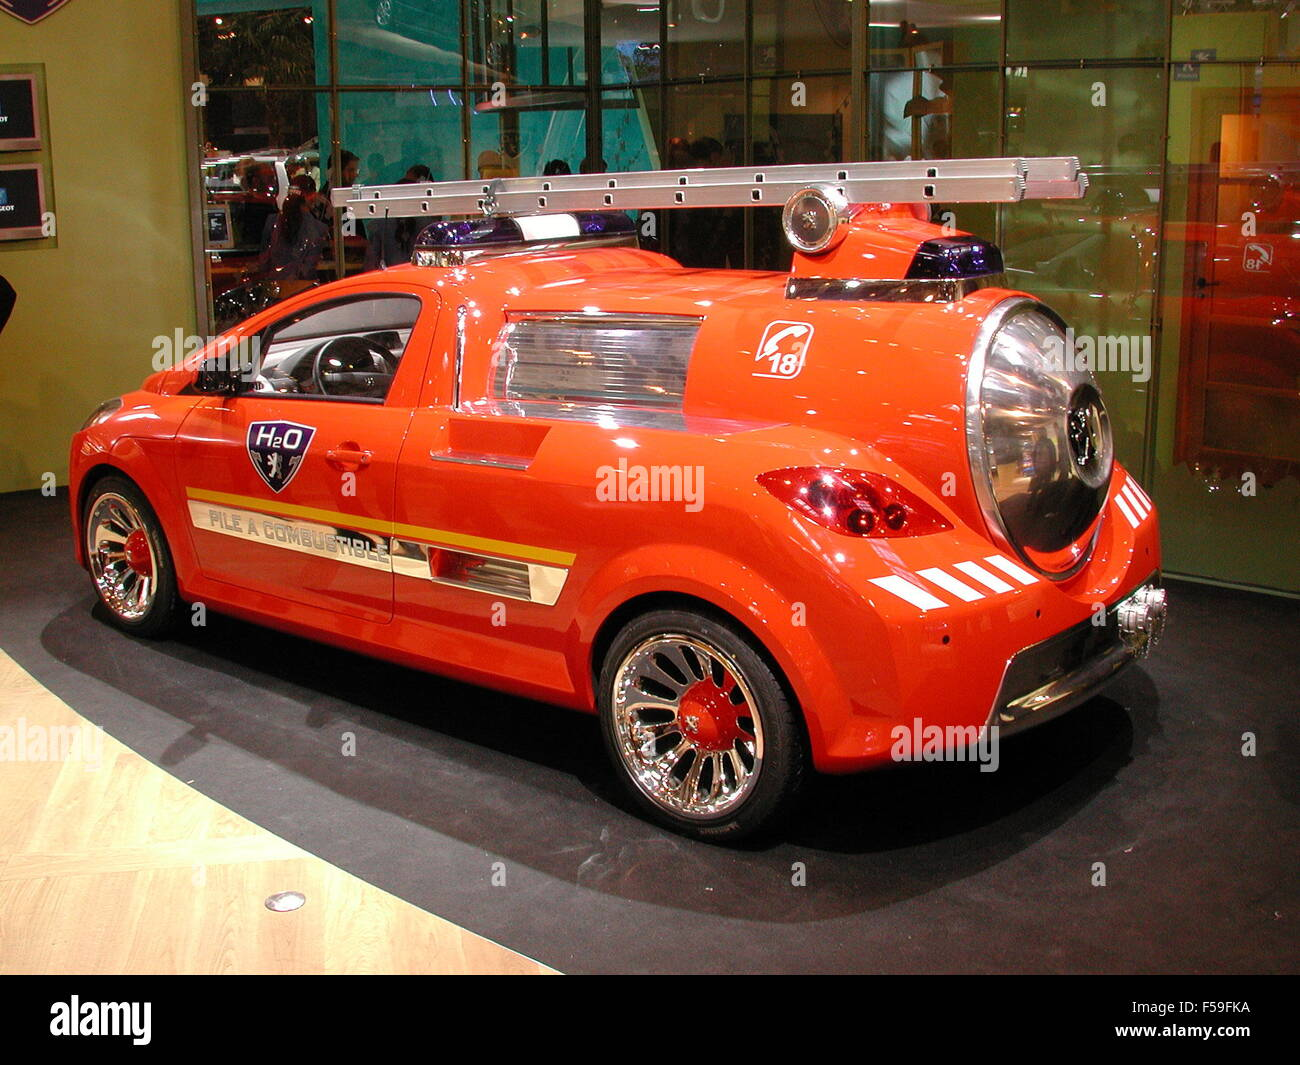 Peugeot H2o fuel cell powered Concept Fire Fighting car - design study shown at the 2002 Paris motorshow - Stock Image